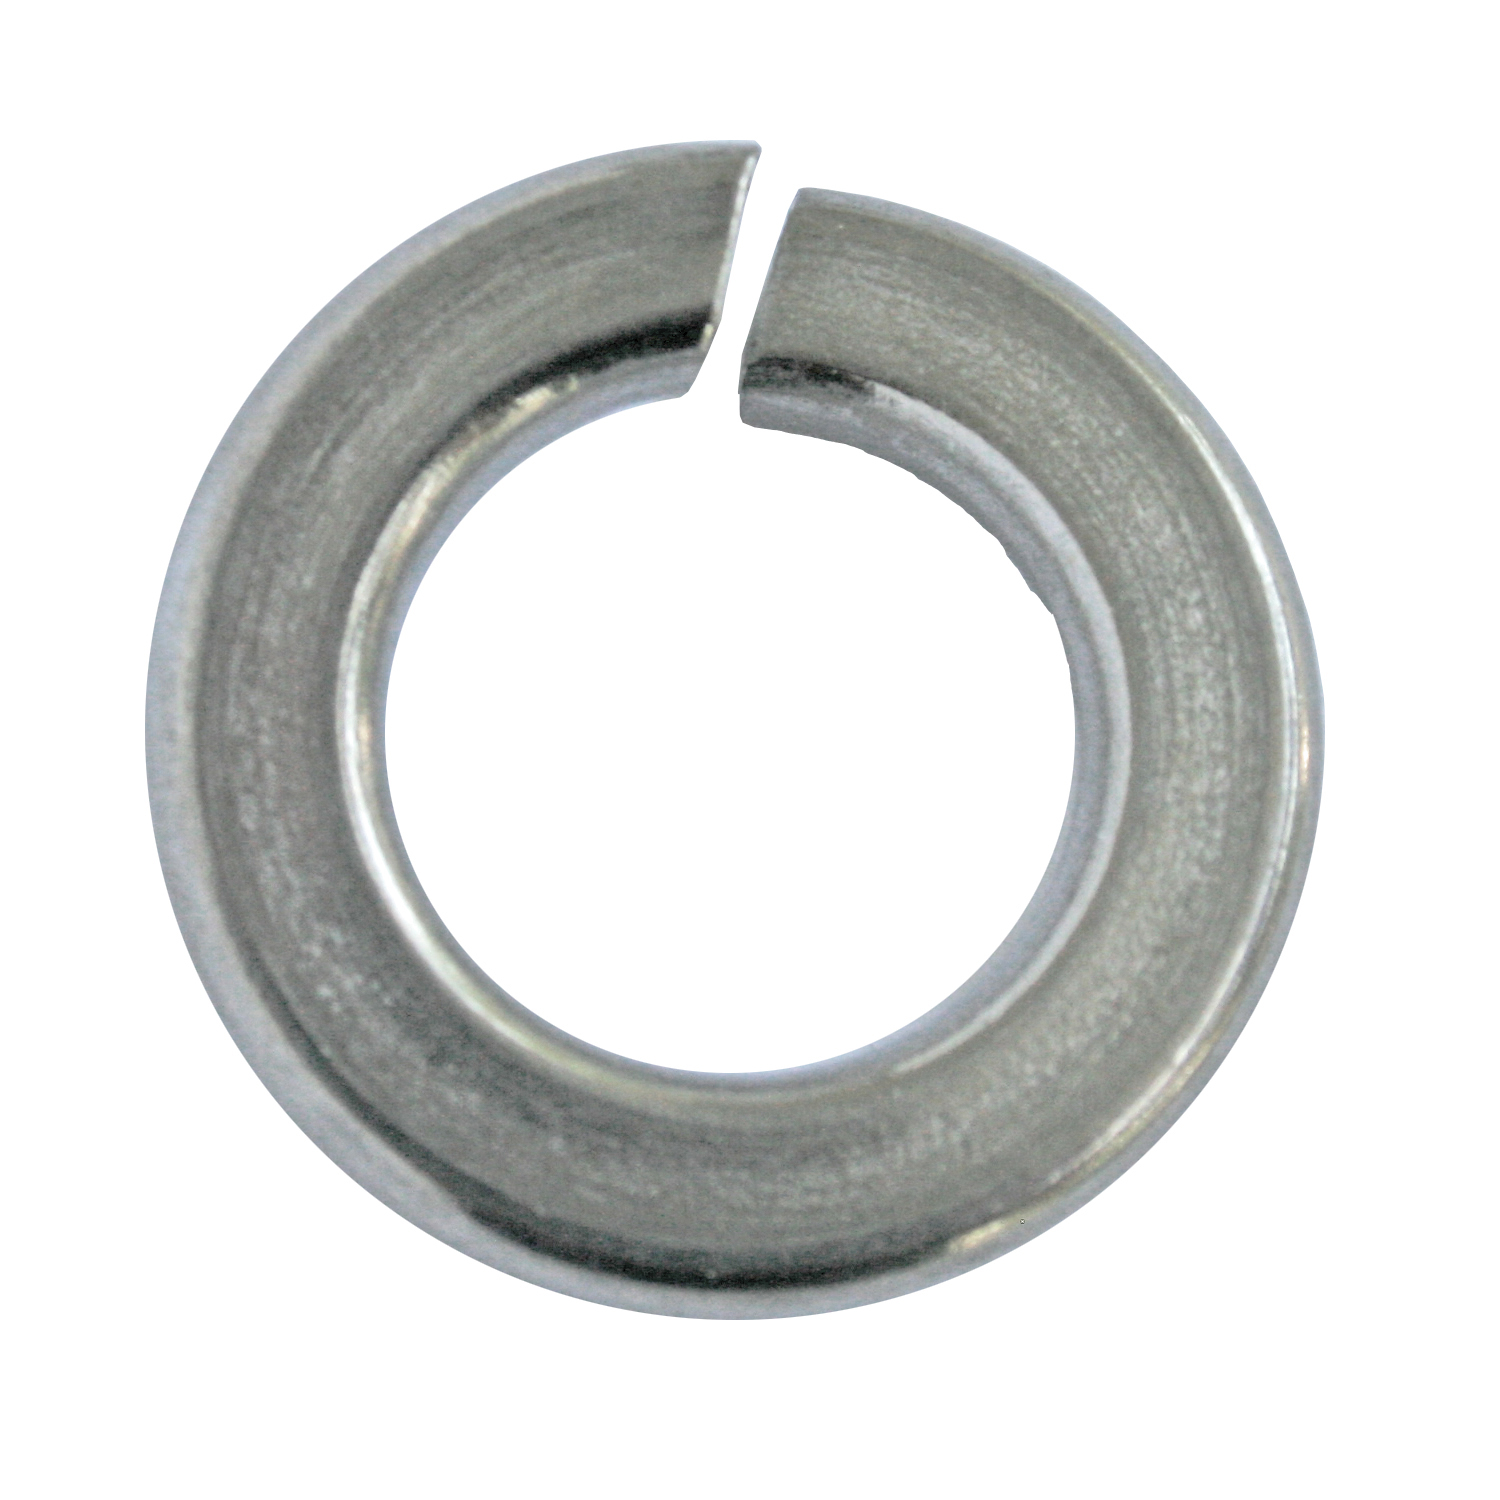 STAINLESS STEEL SPLIT LOCK WASHER